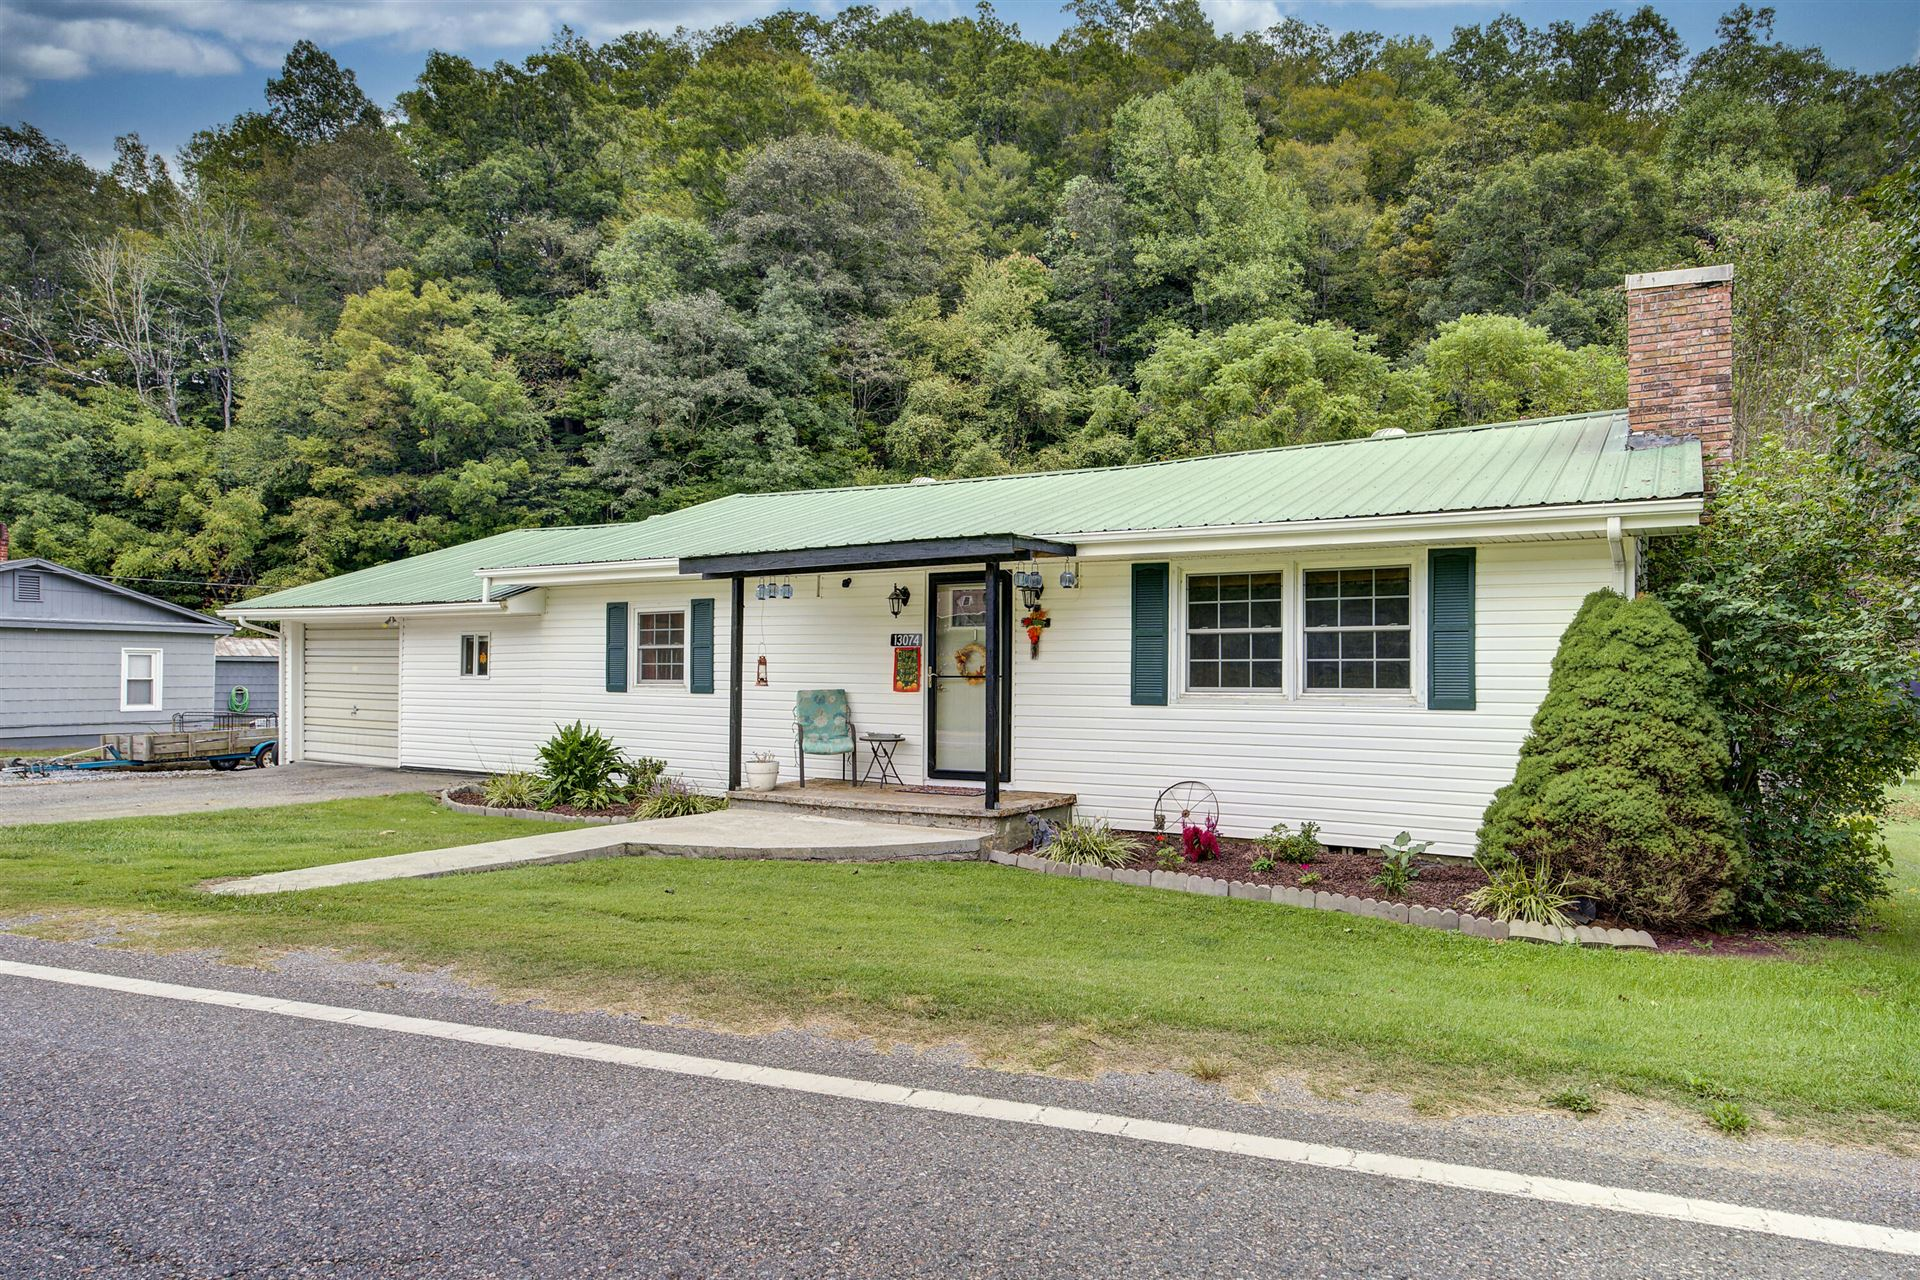 Photo of 13074 Clinch River Highway, Fort Blackmore, VA 24250 (MLS # 9928902)